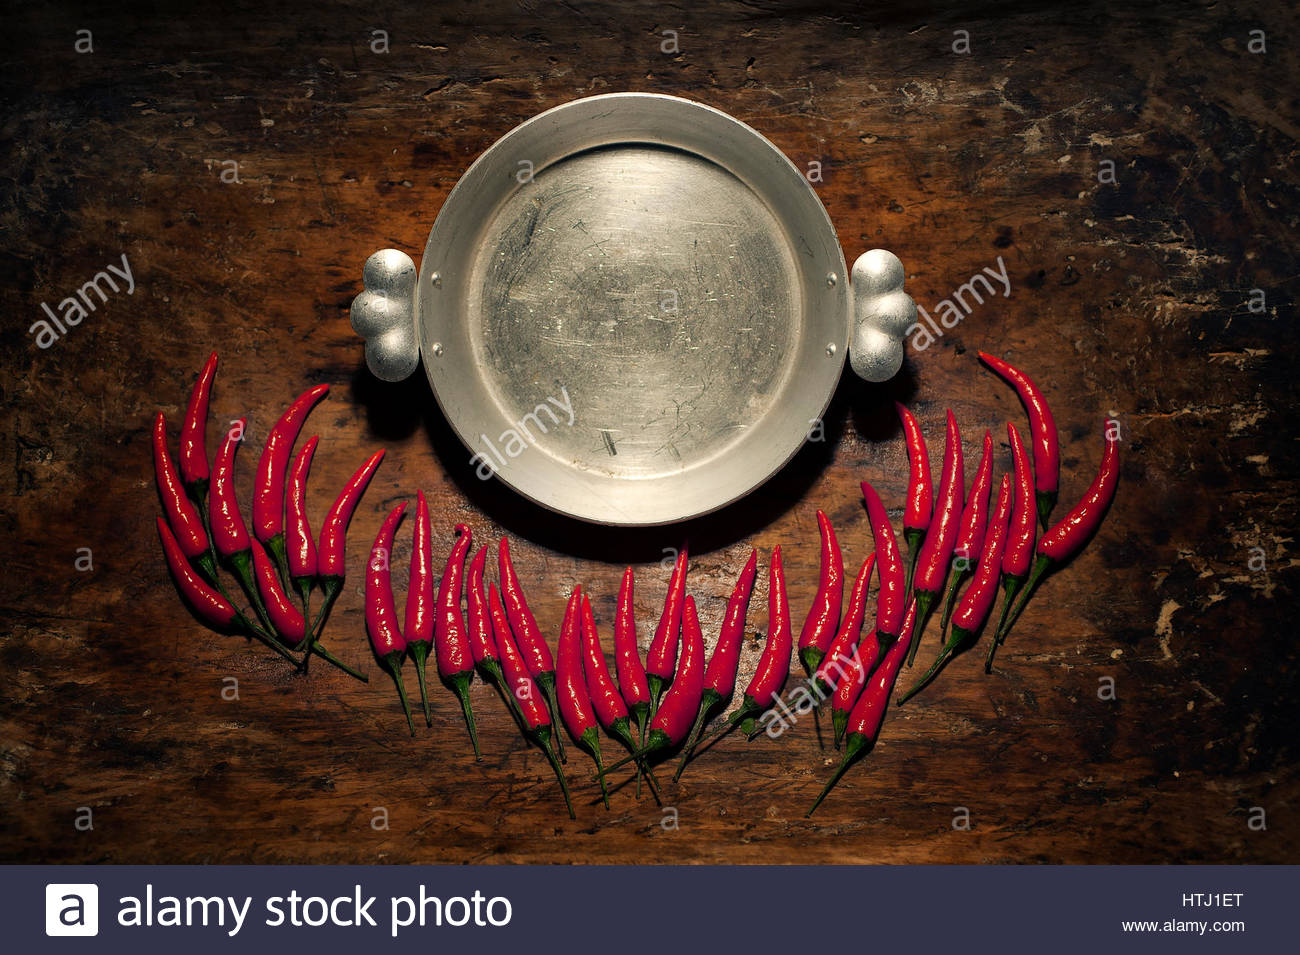 Red Hot Chili Peppers with metall plate in over wooden rustic background with a place for an inscription. Stock Photo